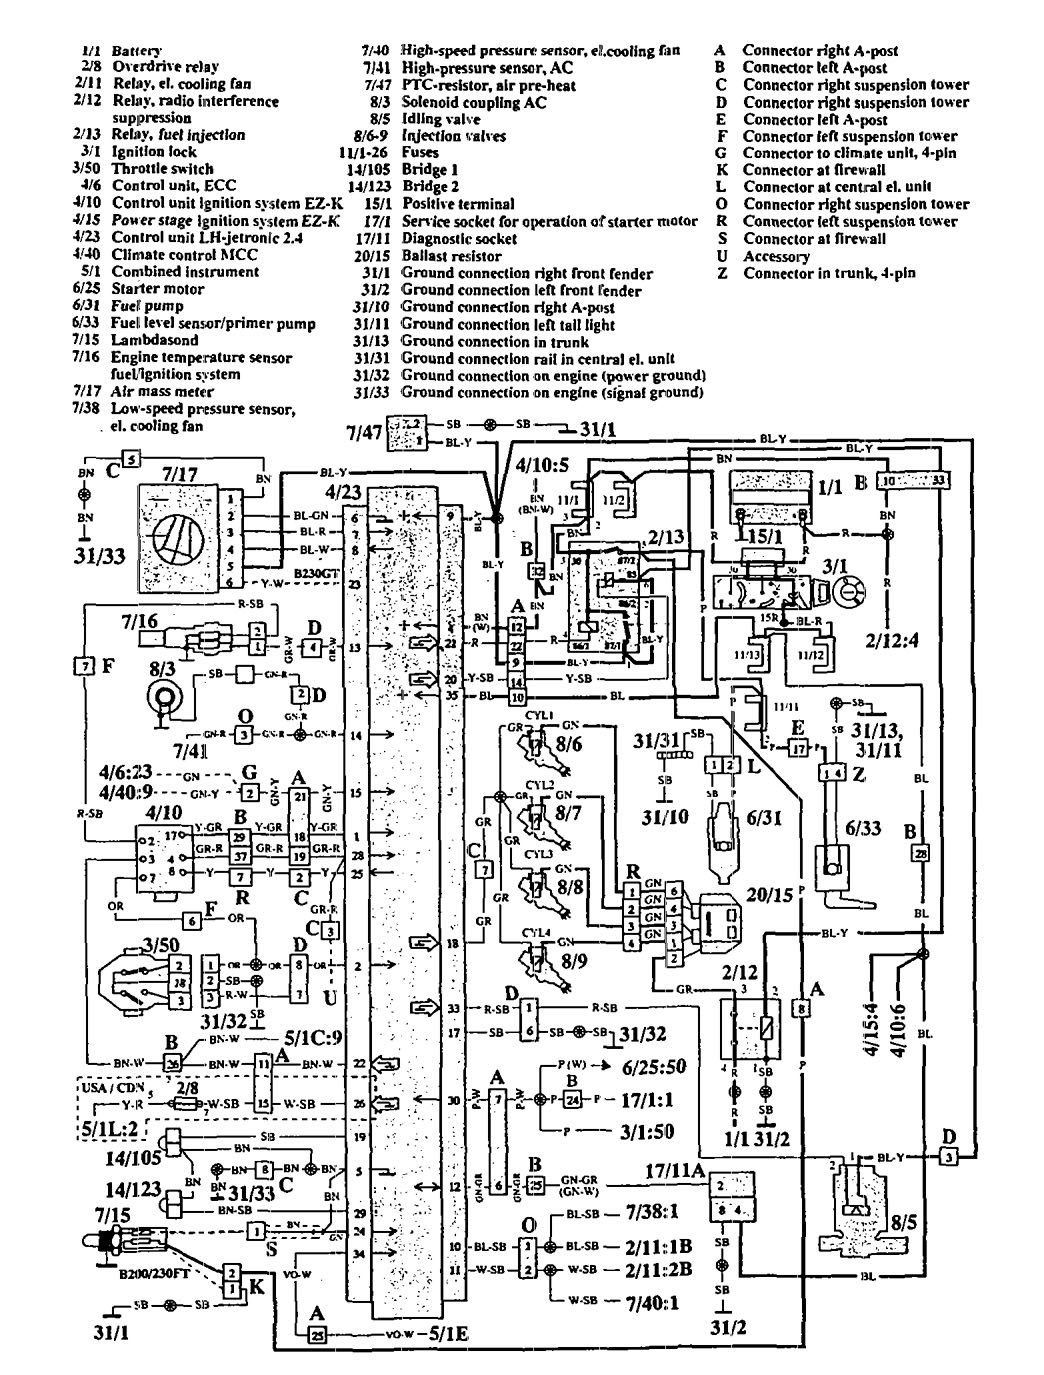 Volvo Wiring Diagram Fuel Controls V on Volvo C70 Fuse Location